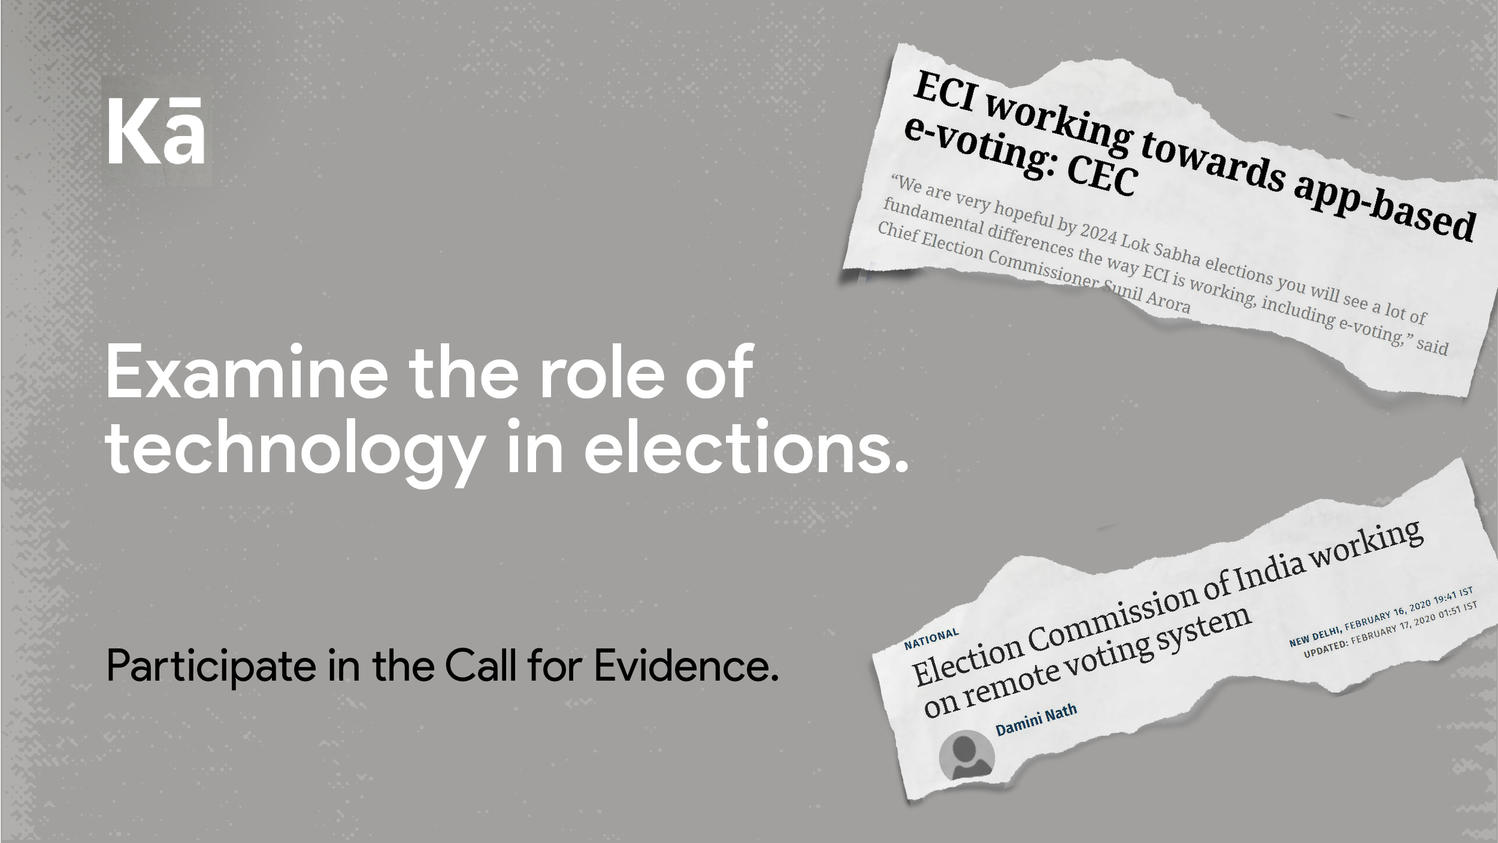 Examine the role of technology in elections